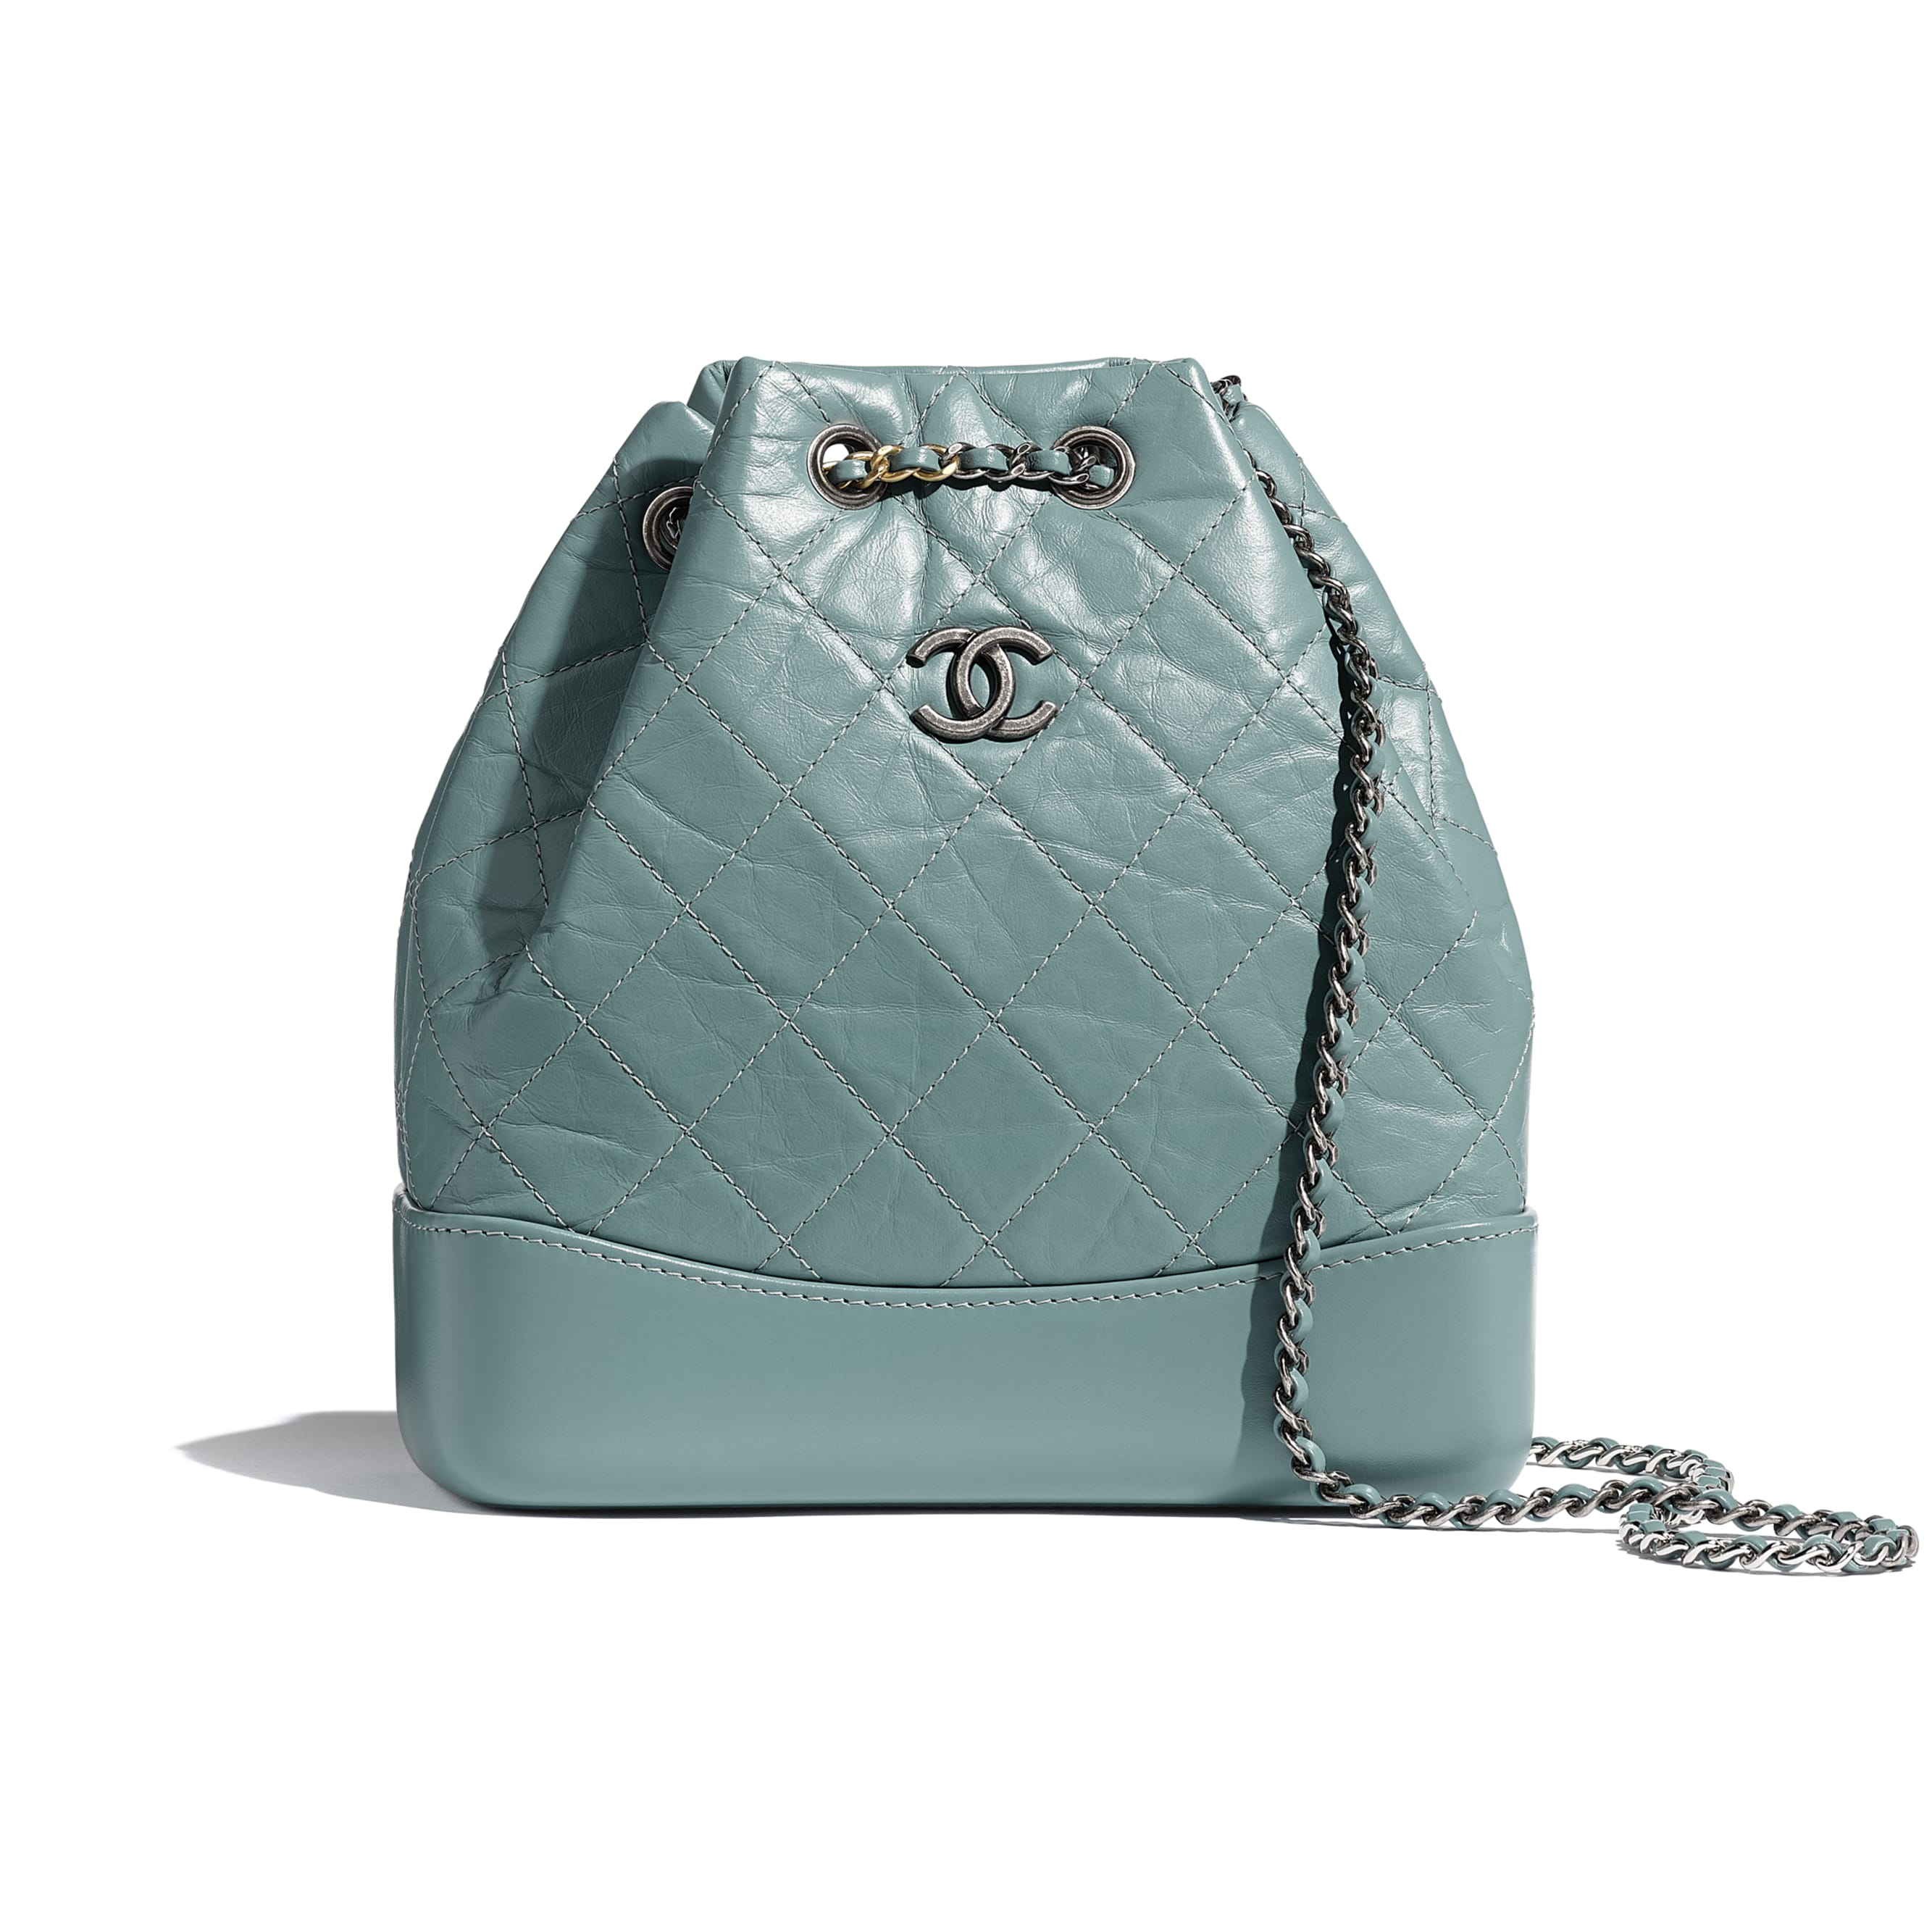 CHANEL'S GABRIELLE Small Backpack - Blue - Aged Calfskin, Smooth Calfskin, Silver-Tone & Gold-Tone Metal - Default view - see standard sized version